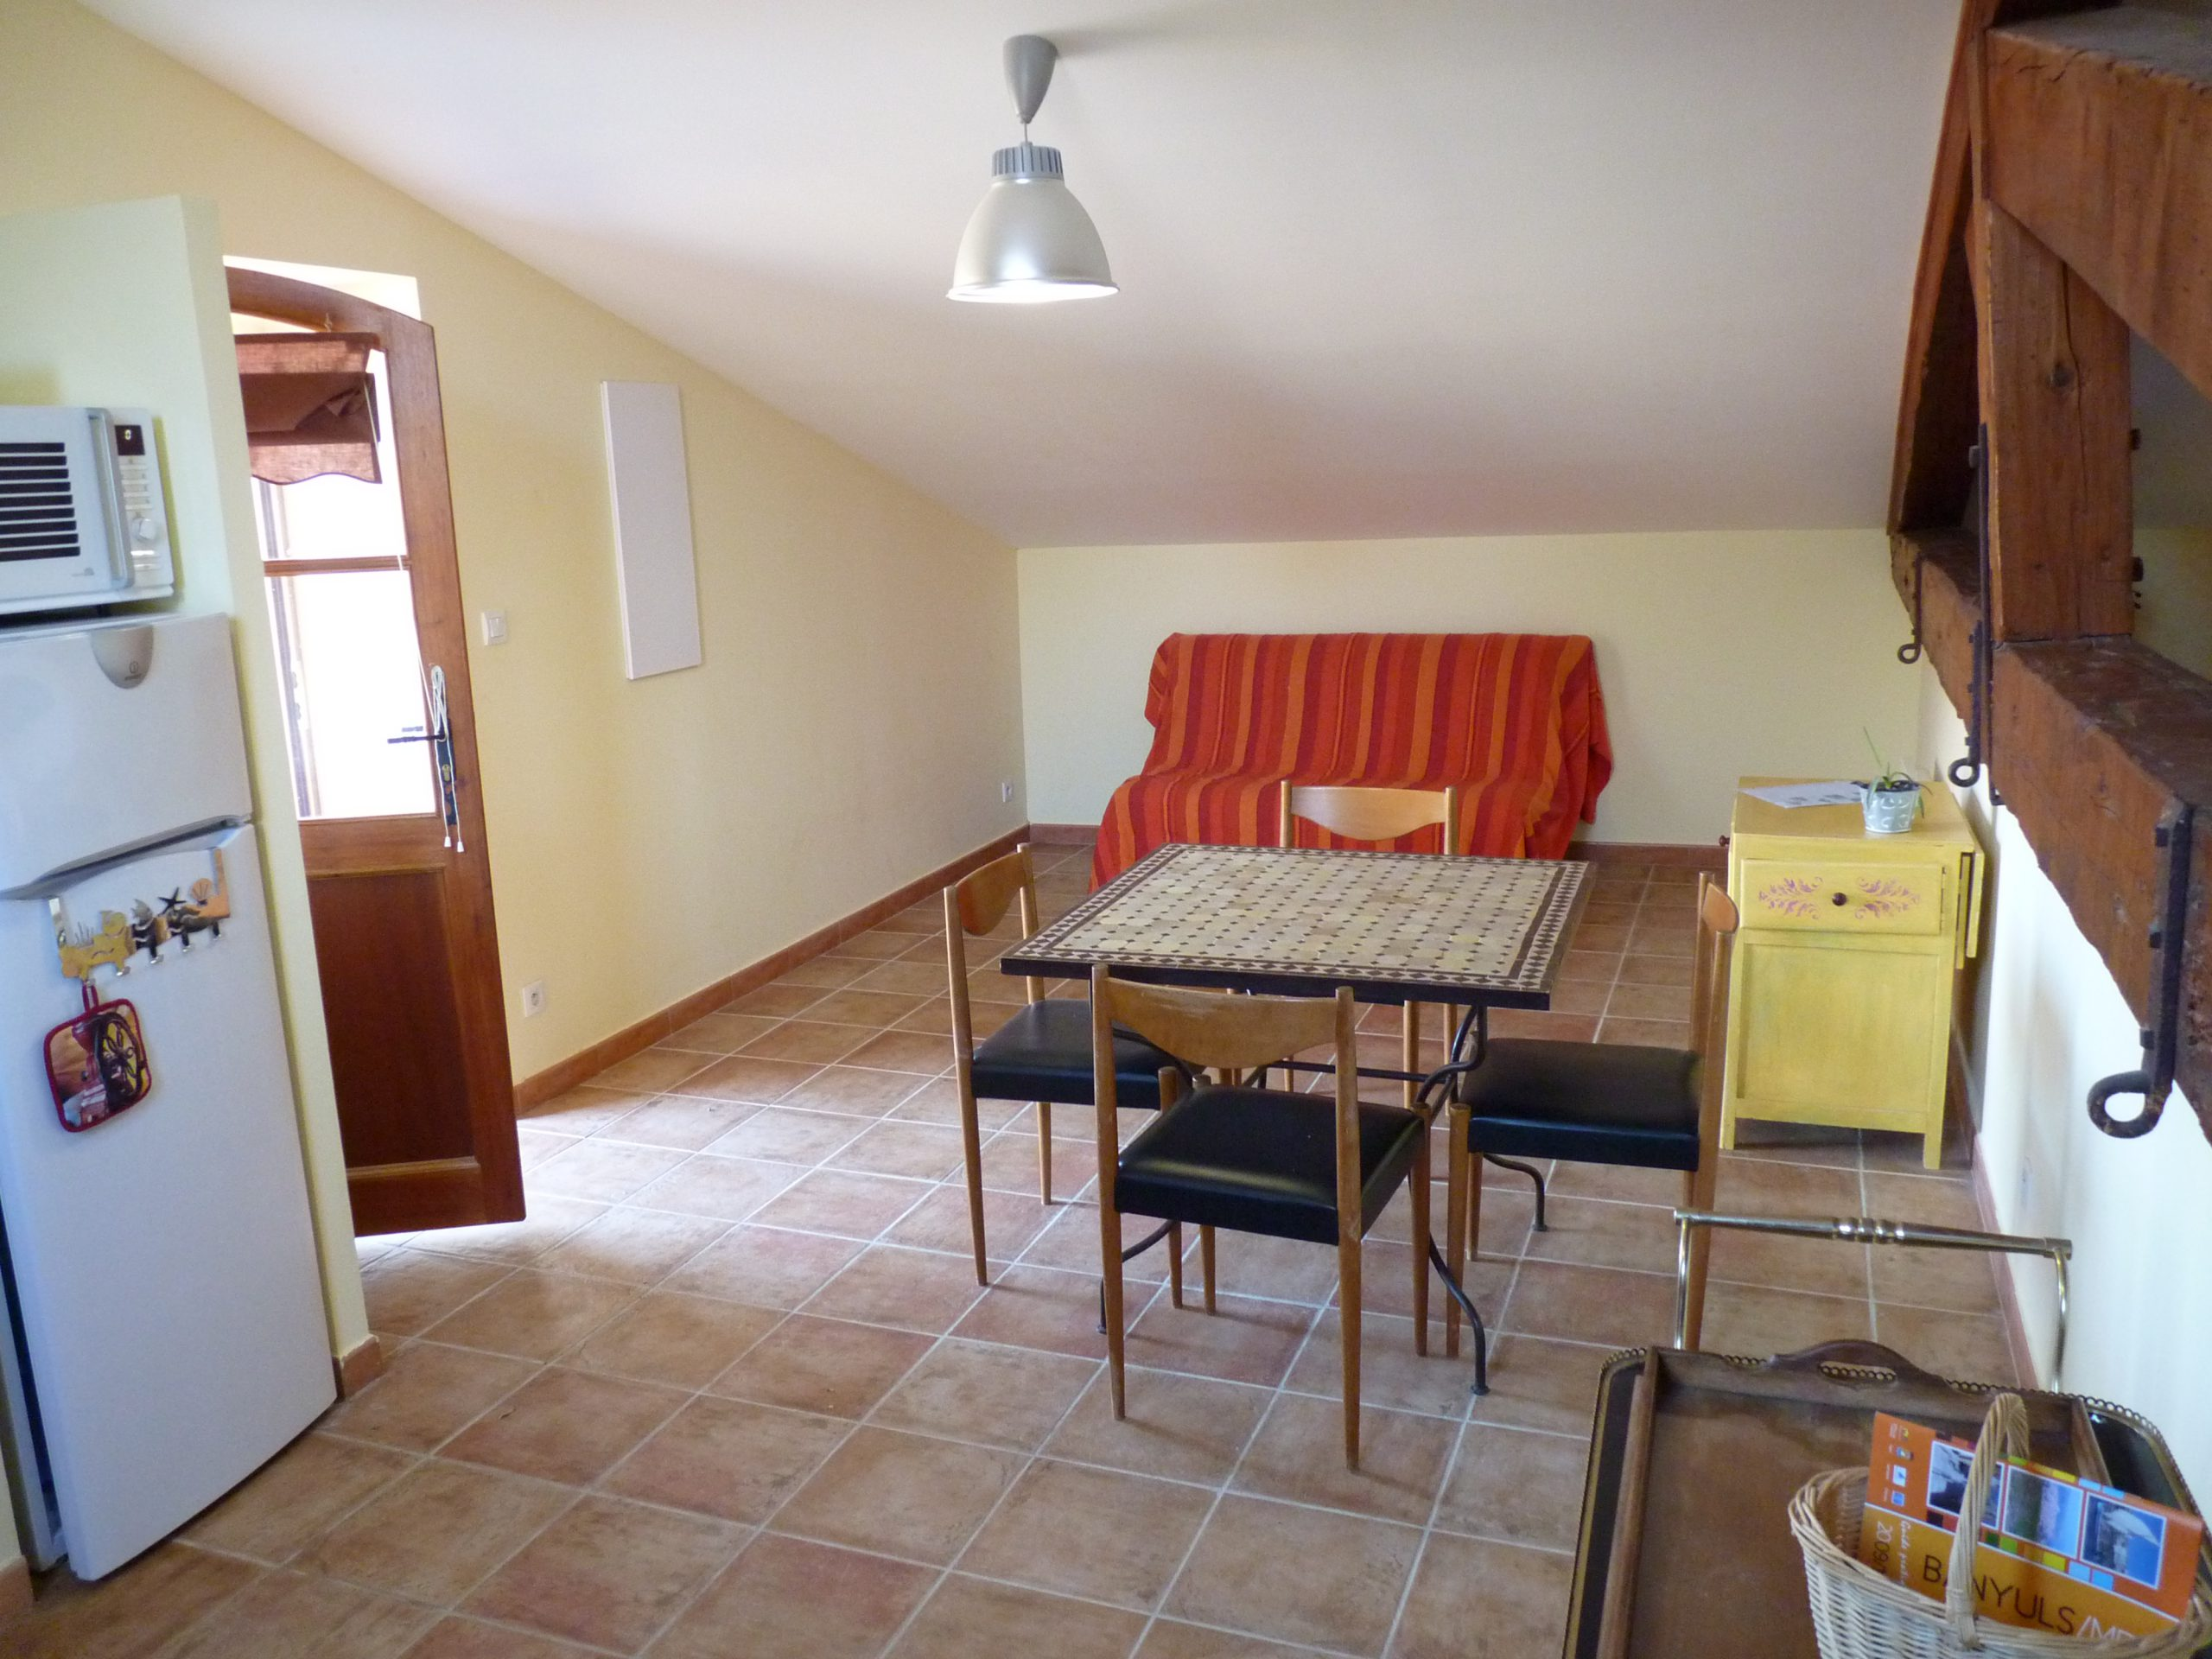 appartement-studio-location-domaine-valcros-paulilles-port-vendres-chambres-hotes-domaine-valcros-banyuls-collioure-2